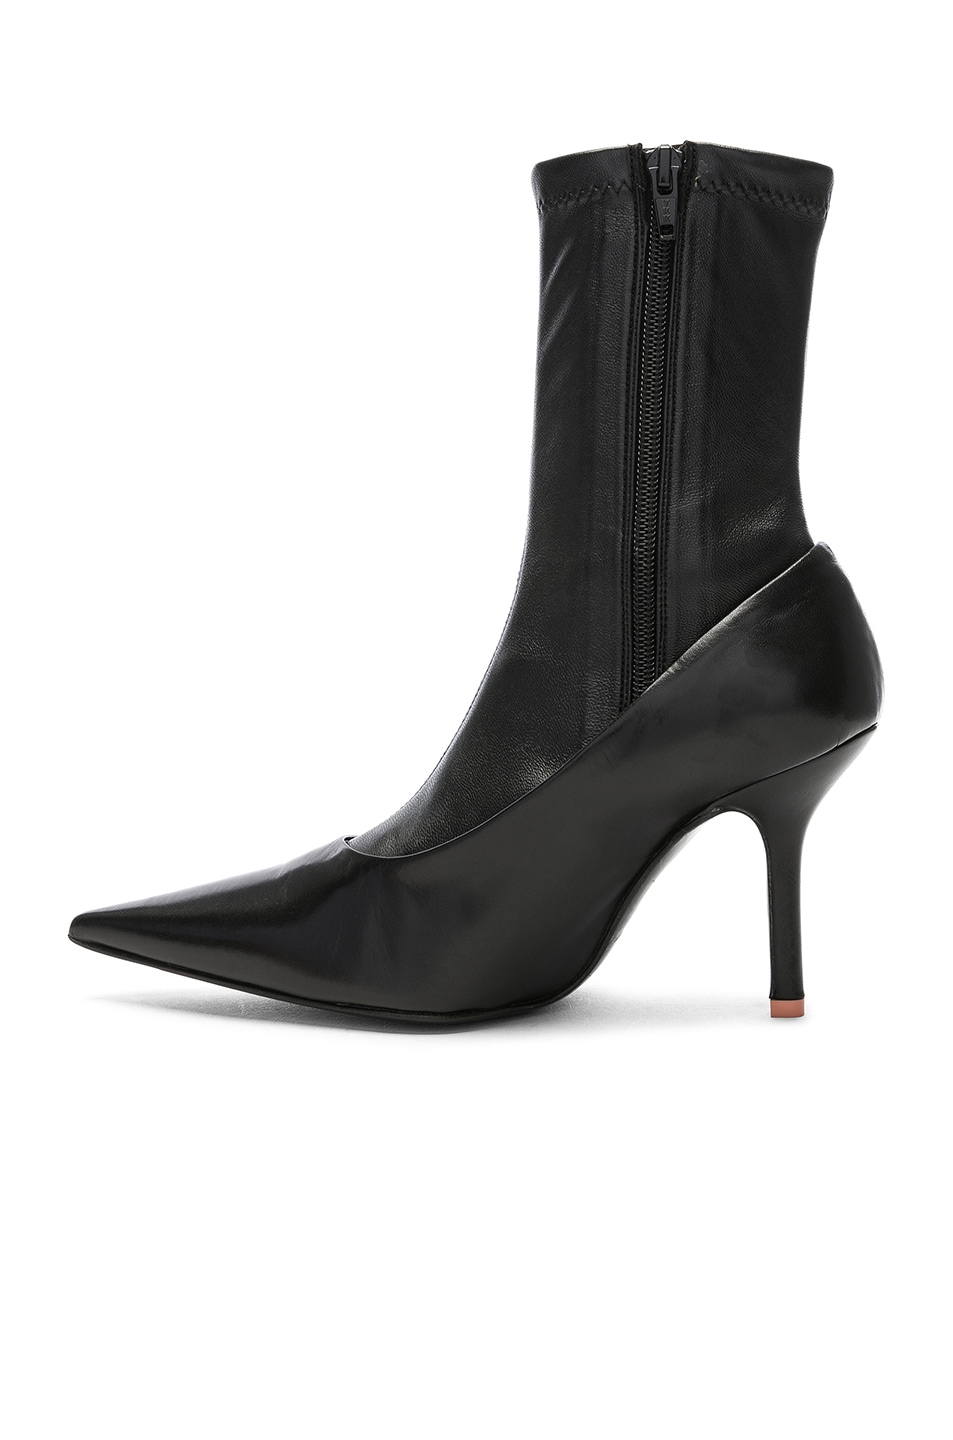 Image 5 of Acne Studios Leather Boots in Black